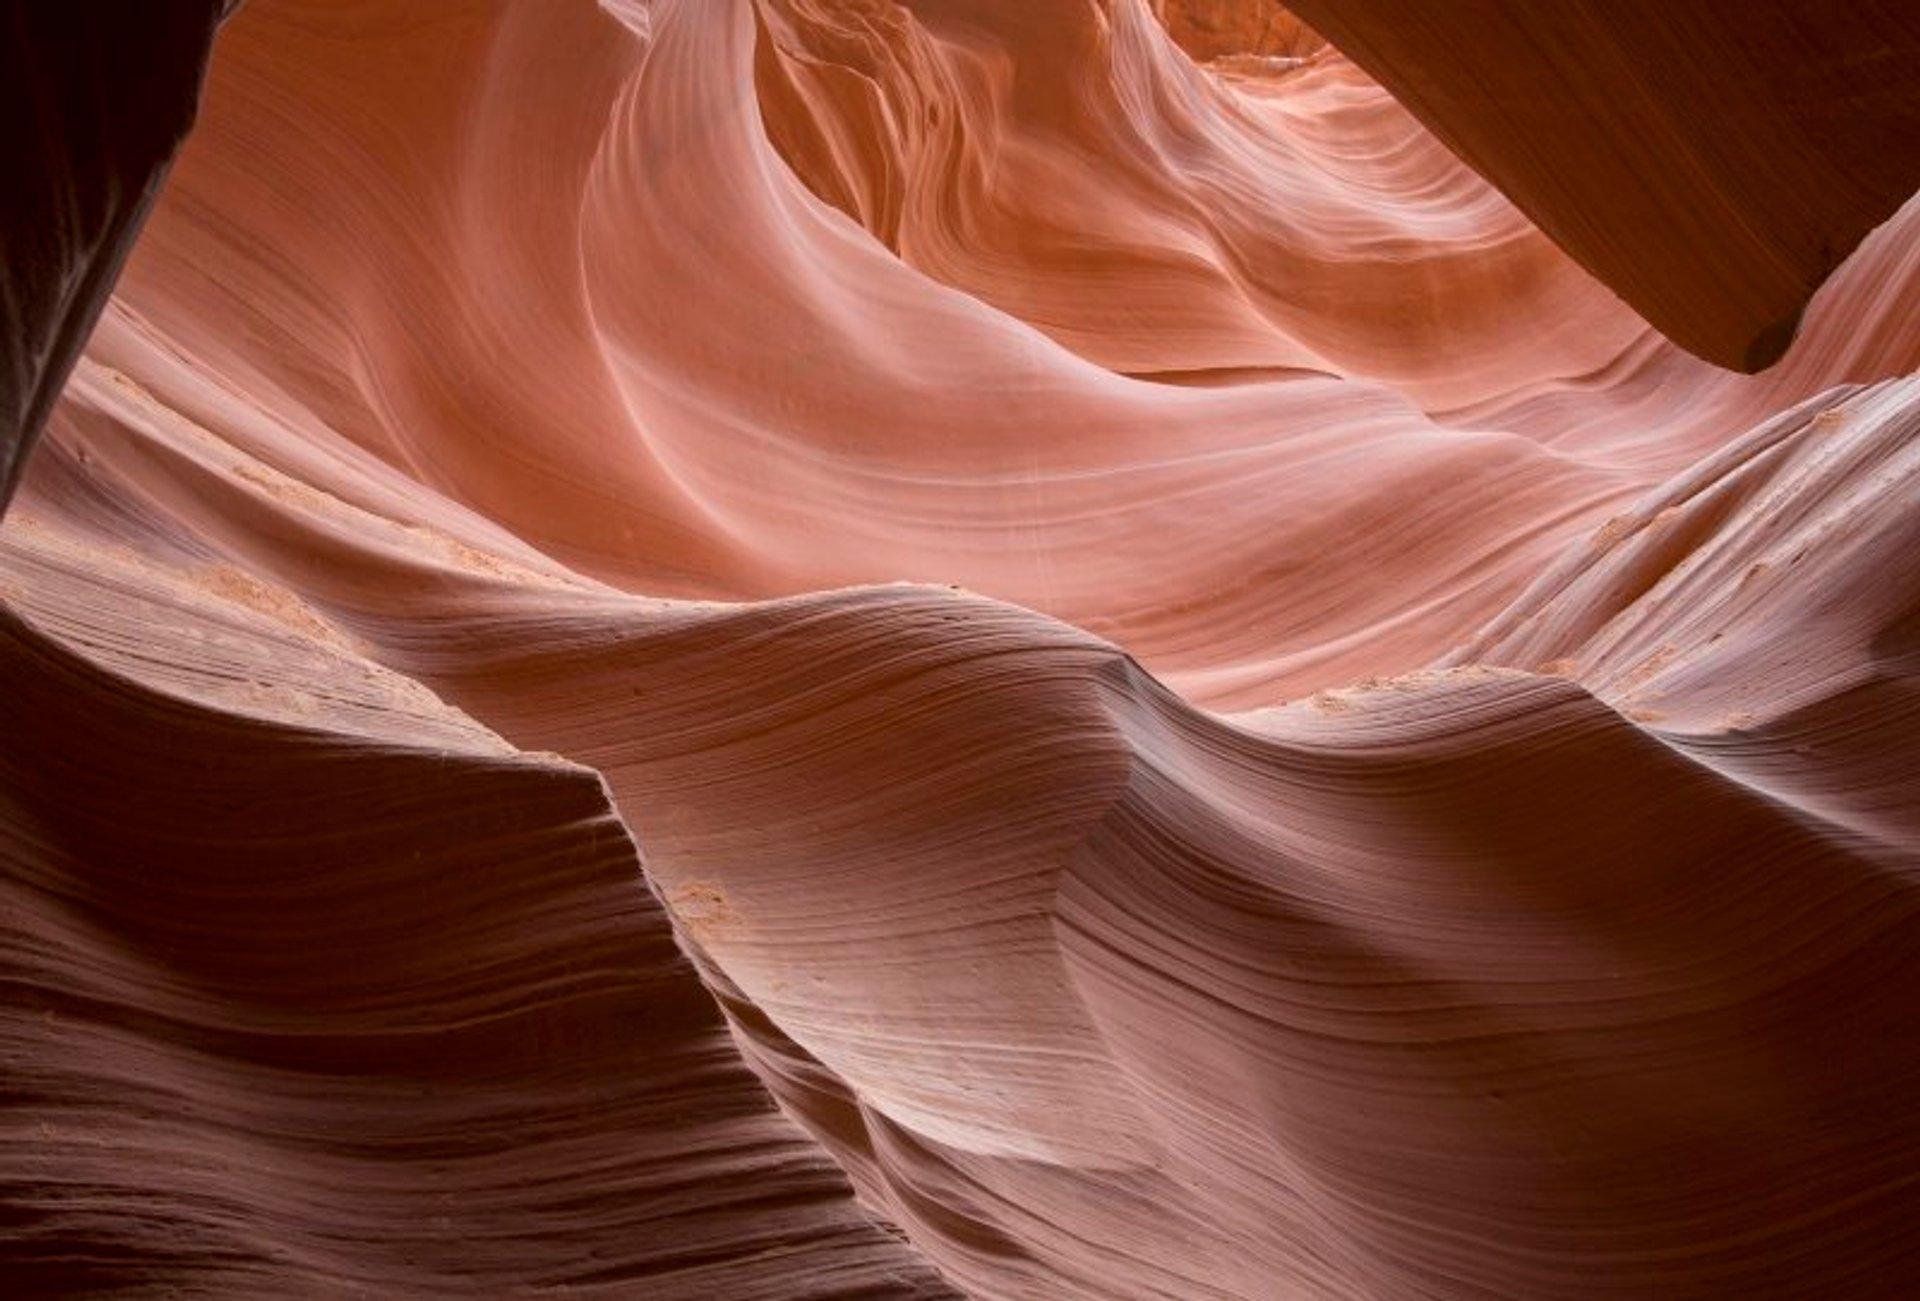 Antelope Canyon Light Beams Season in Arizona - Best Season 2020